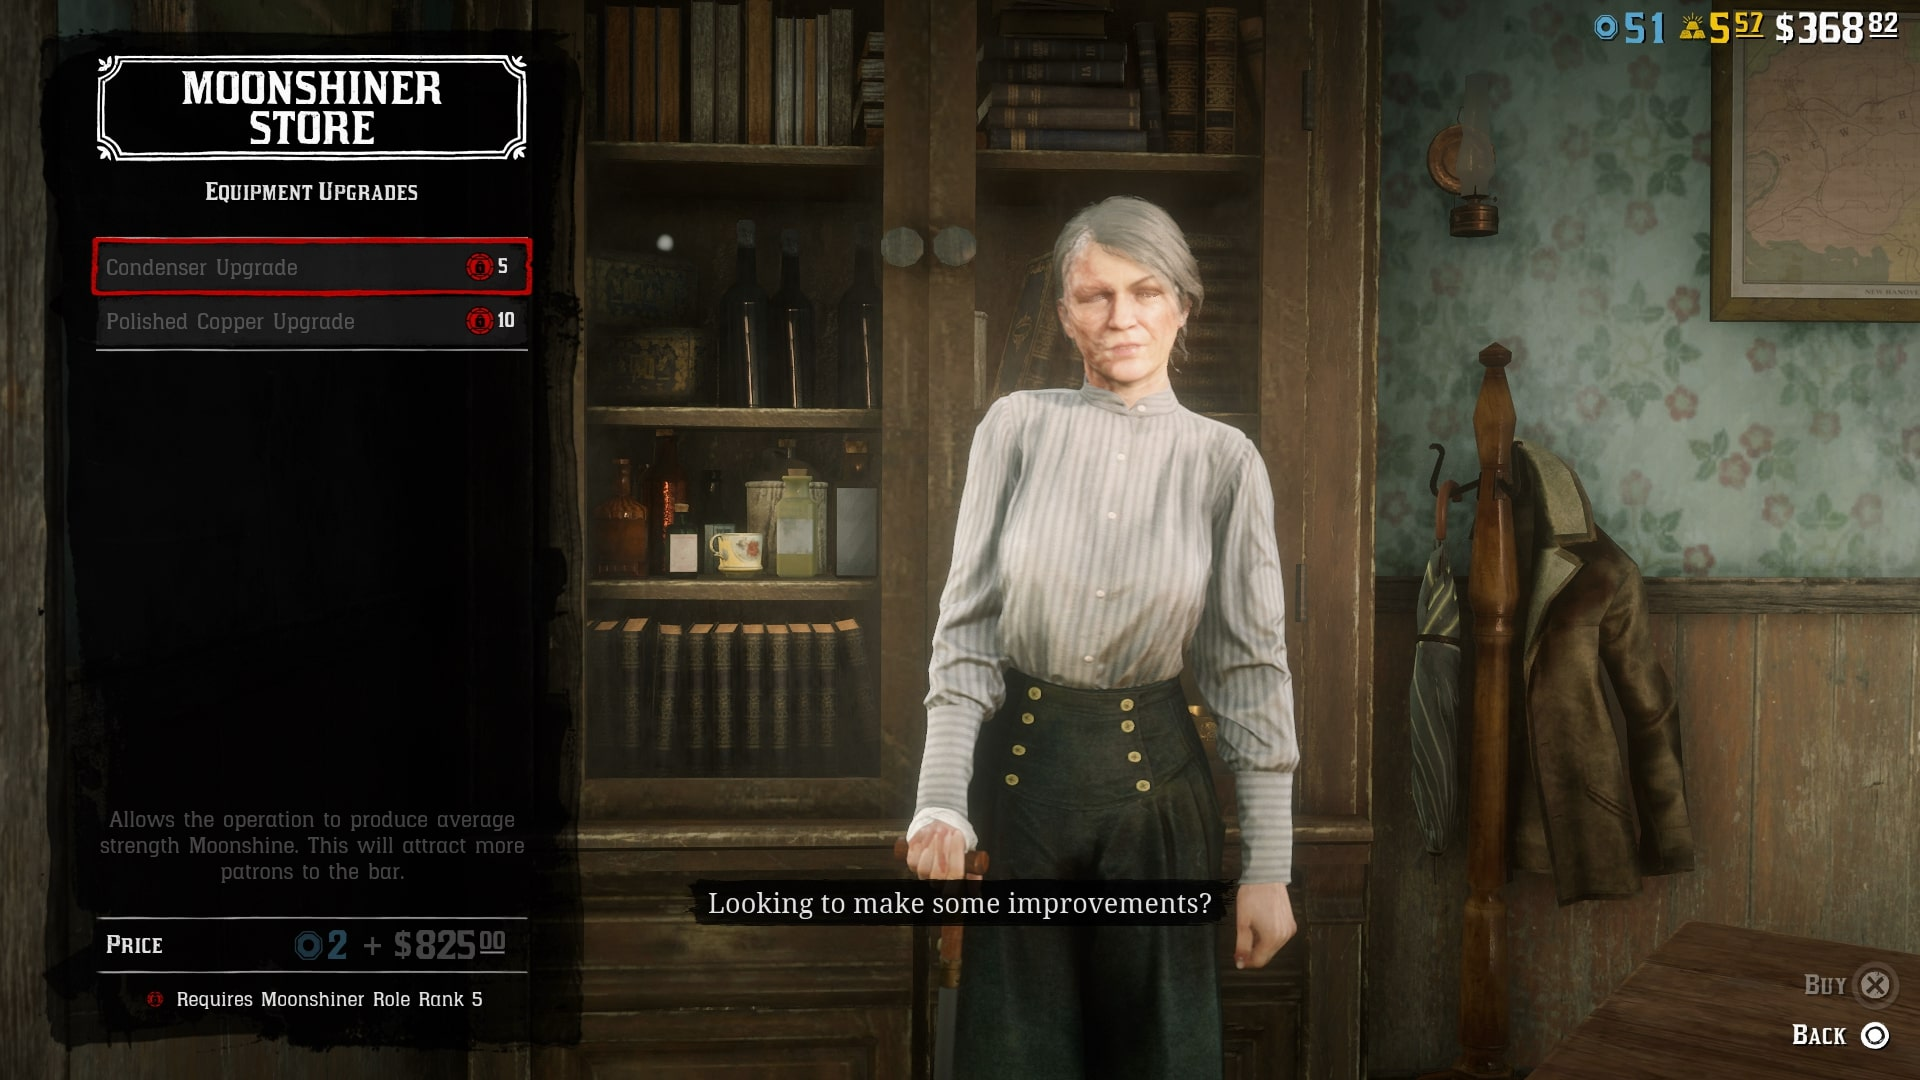 Red Dead Online: How to Play as a Moonshiner | USgamer